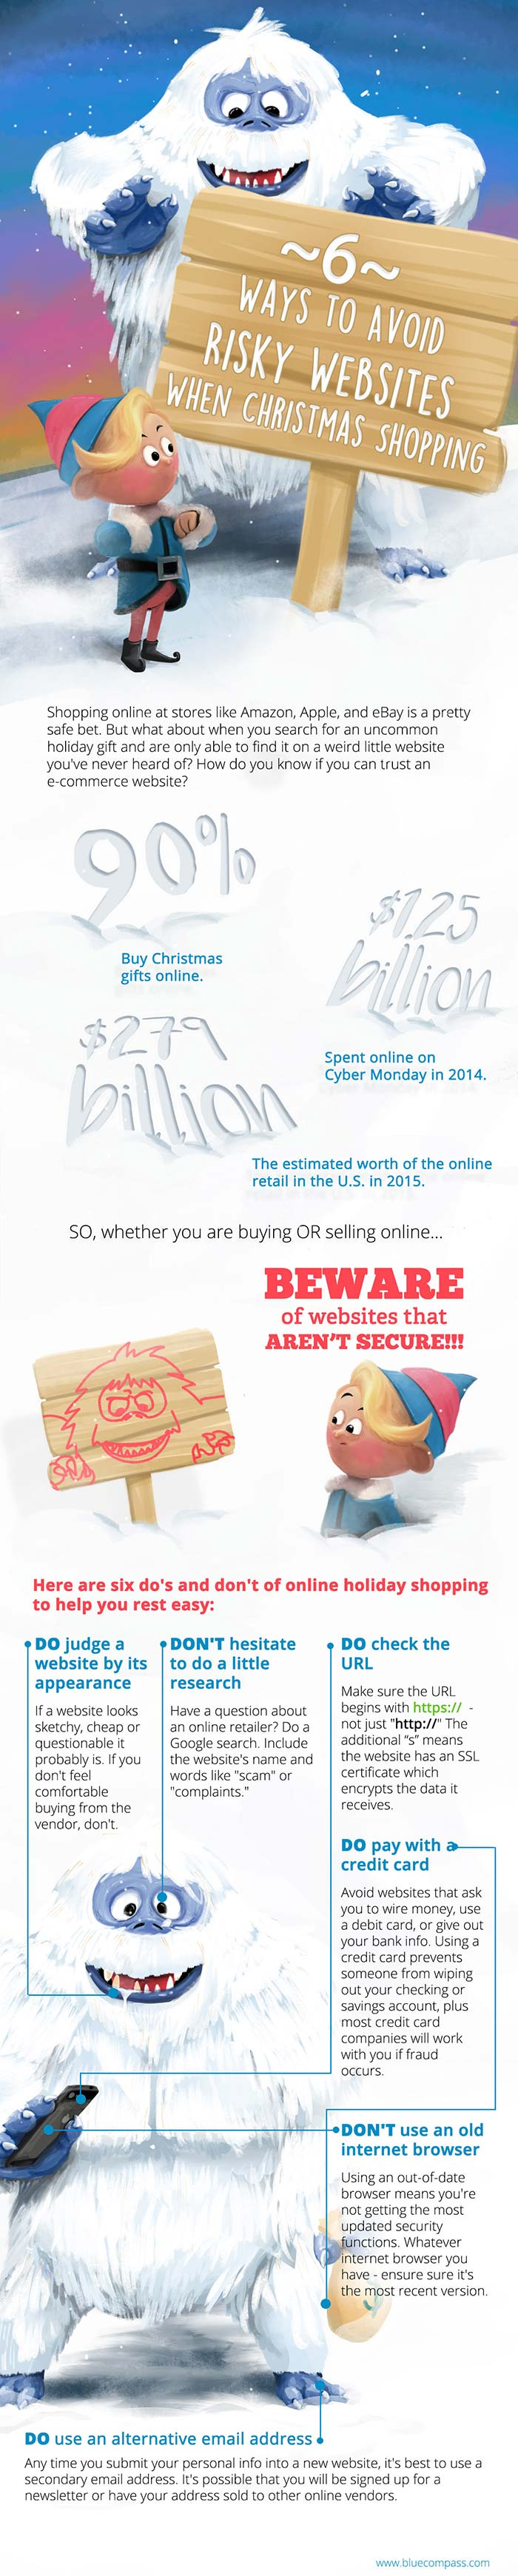 6 Ways to Avoid Risky Websites When Christmas Shopping Online